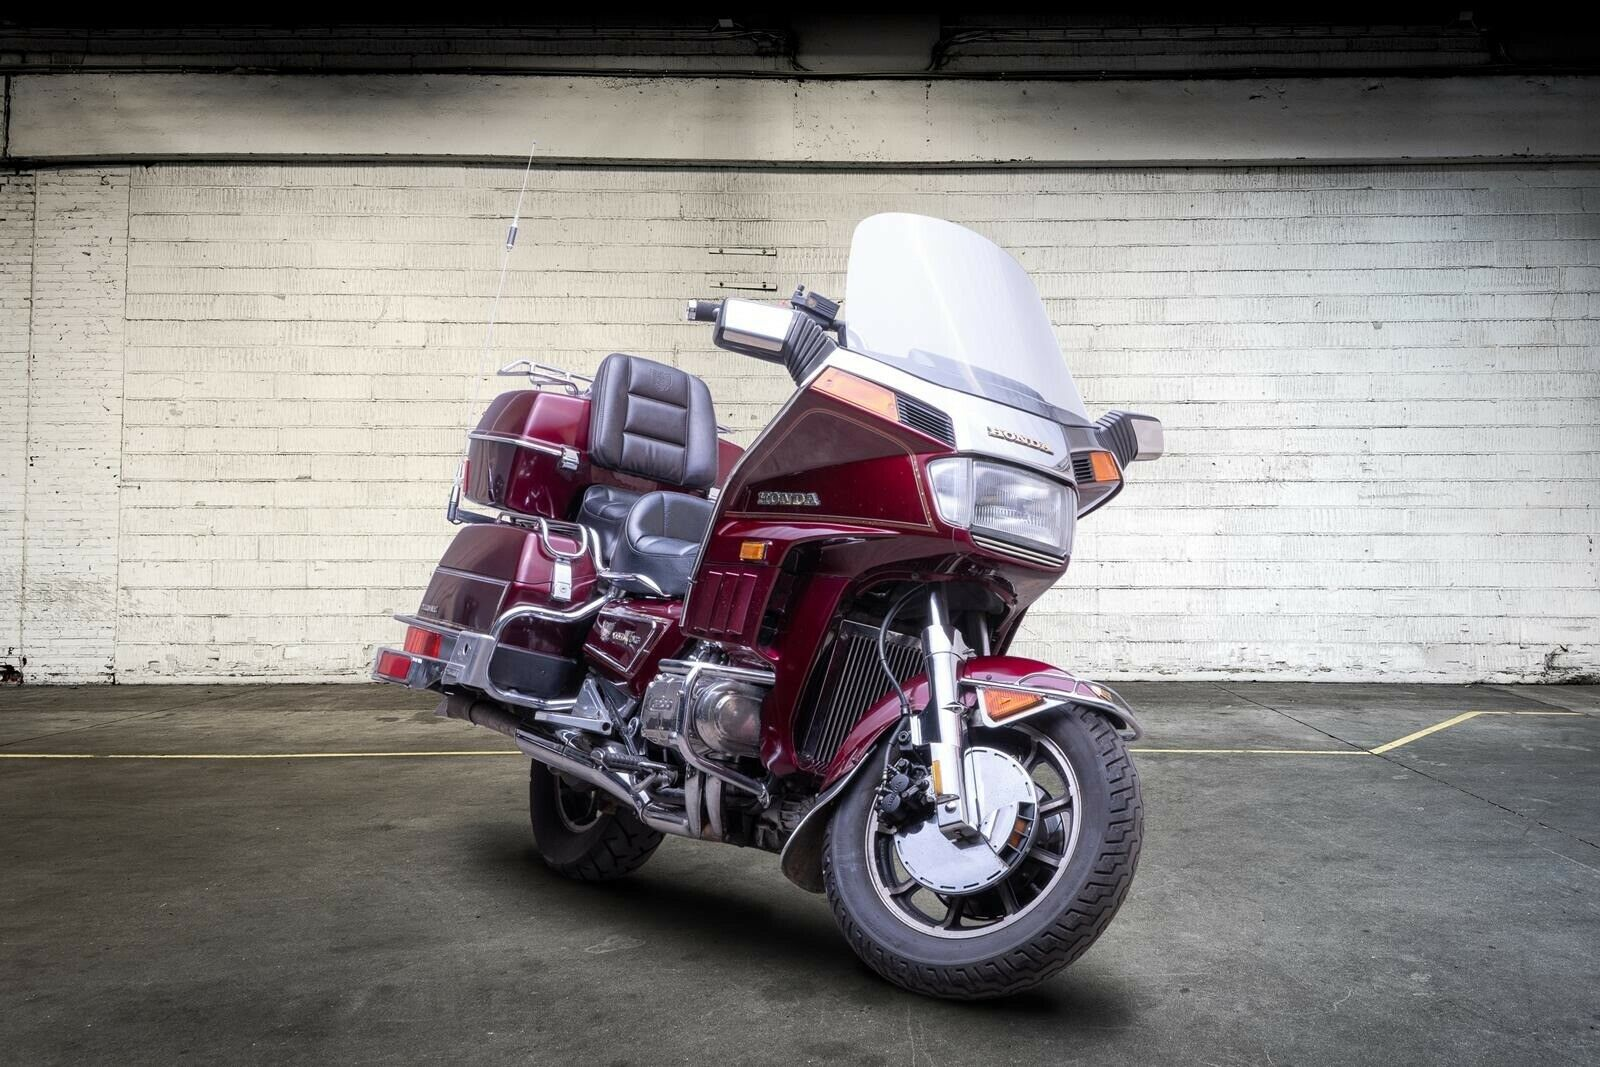 Honda GL 1200 Goldwing